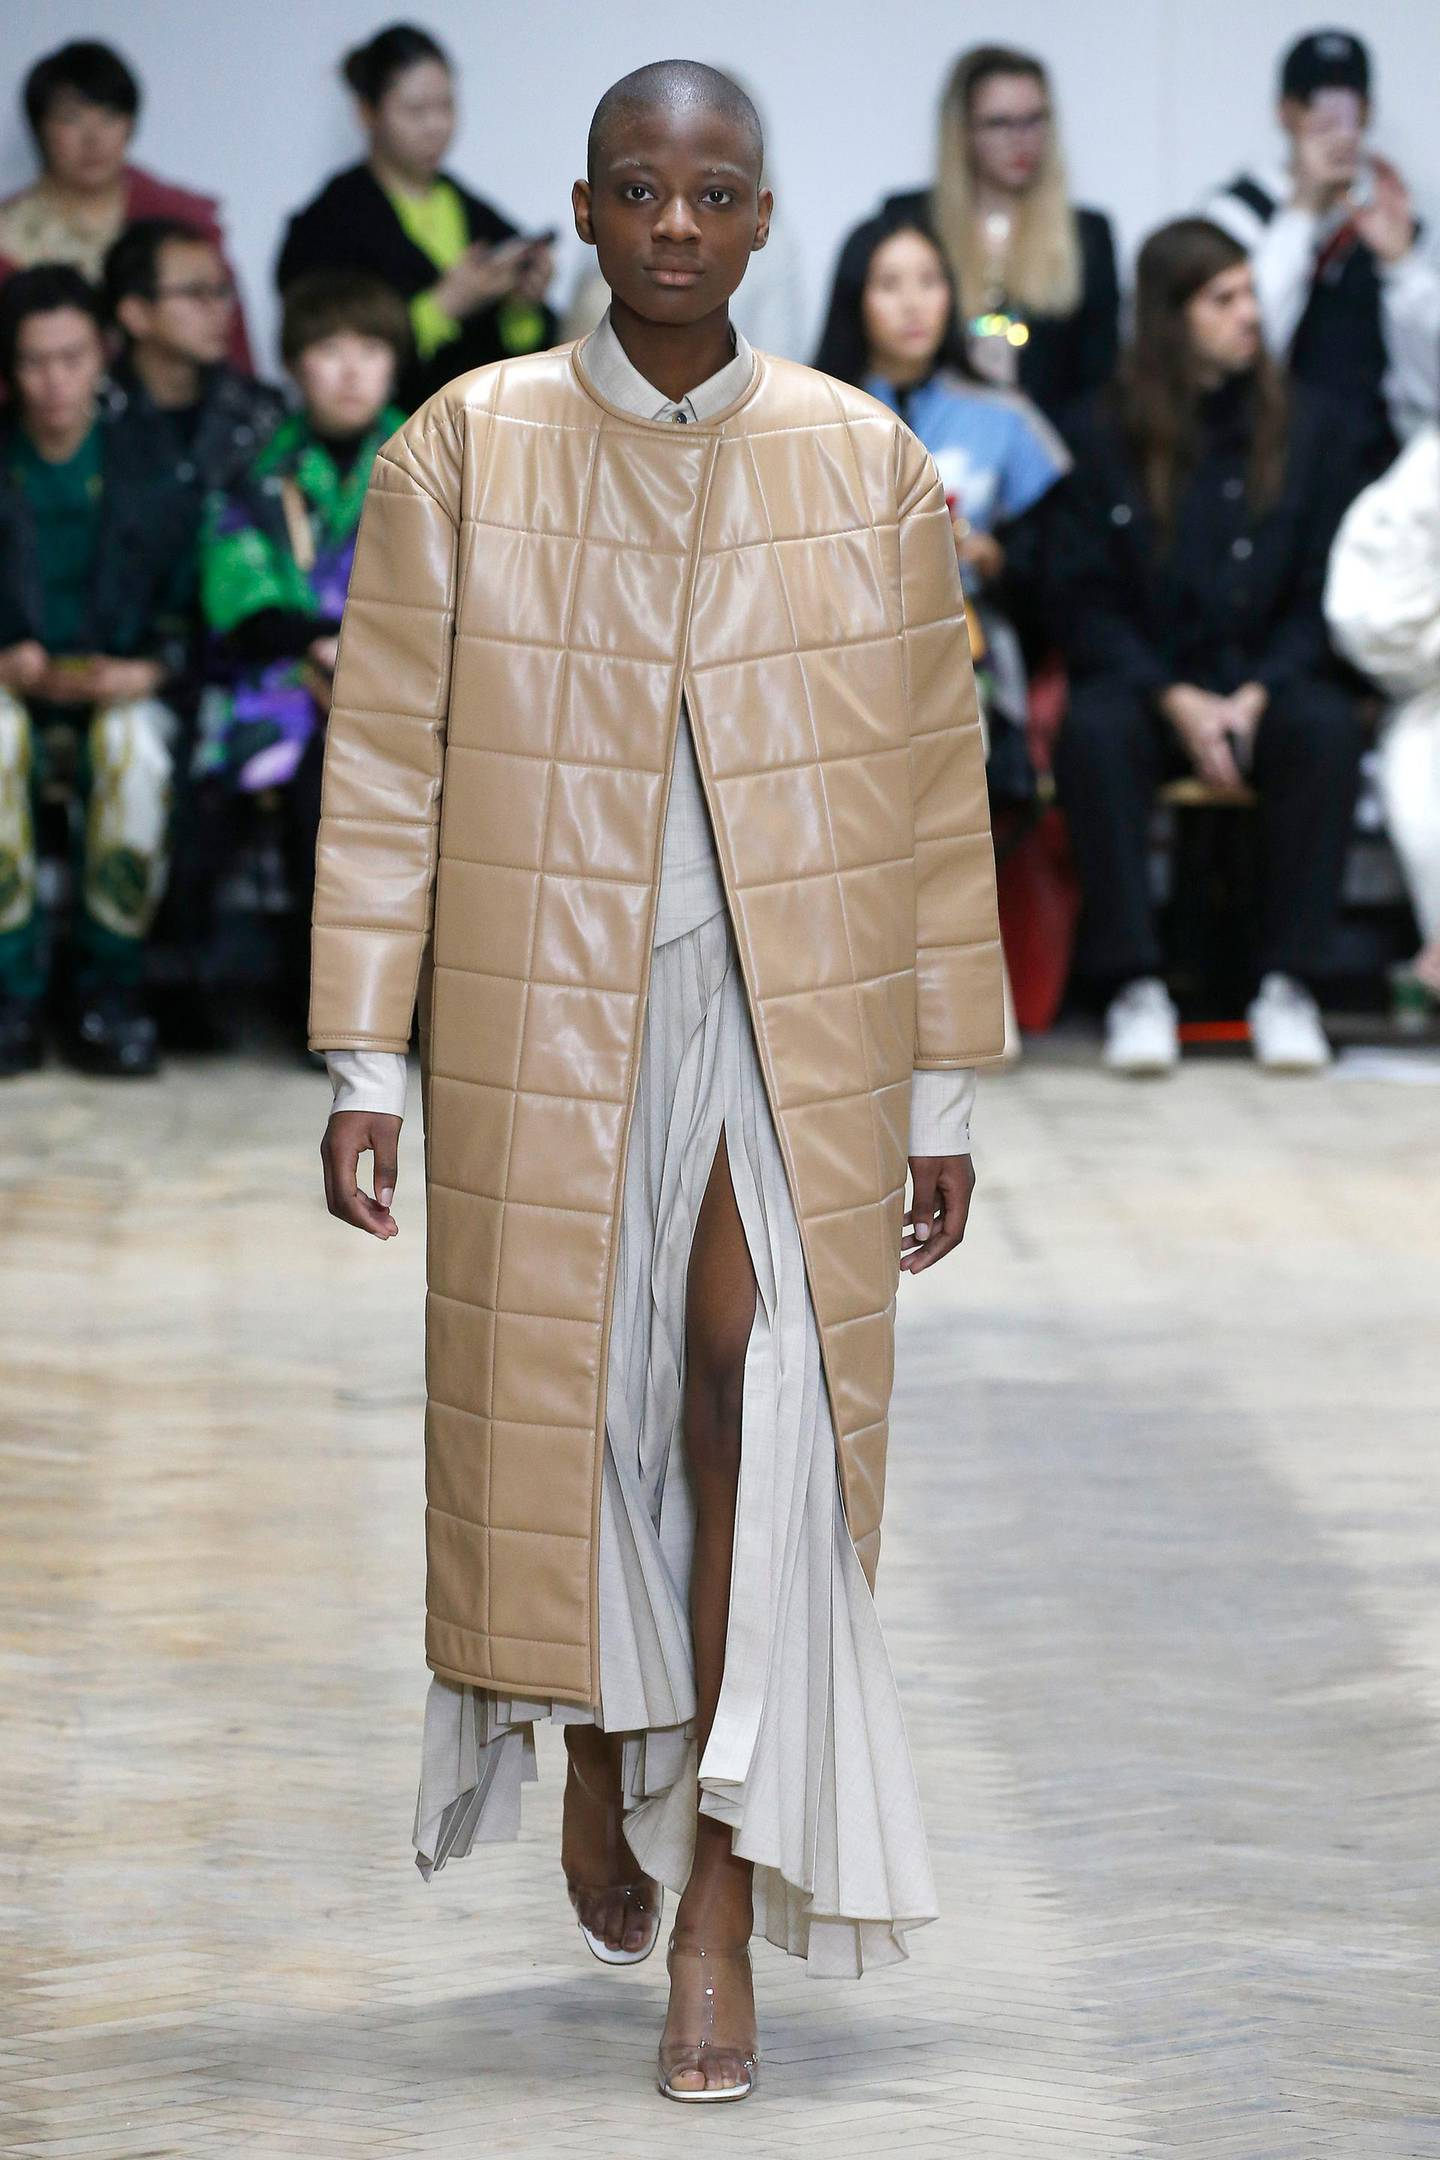 A model walks the runway at the A.W.A.K.E. MODE show during London Fashion Week February 2019 on February 16, 2019 in London, England.